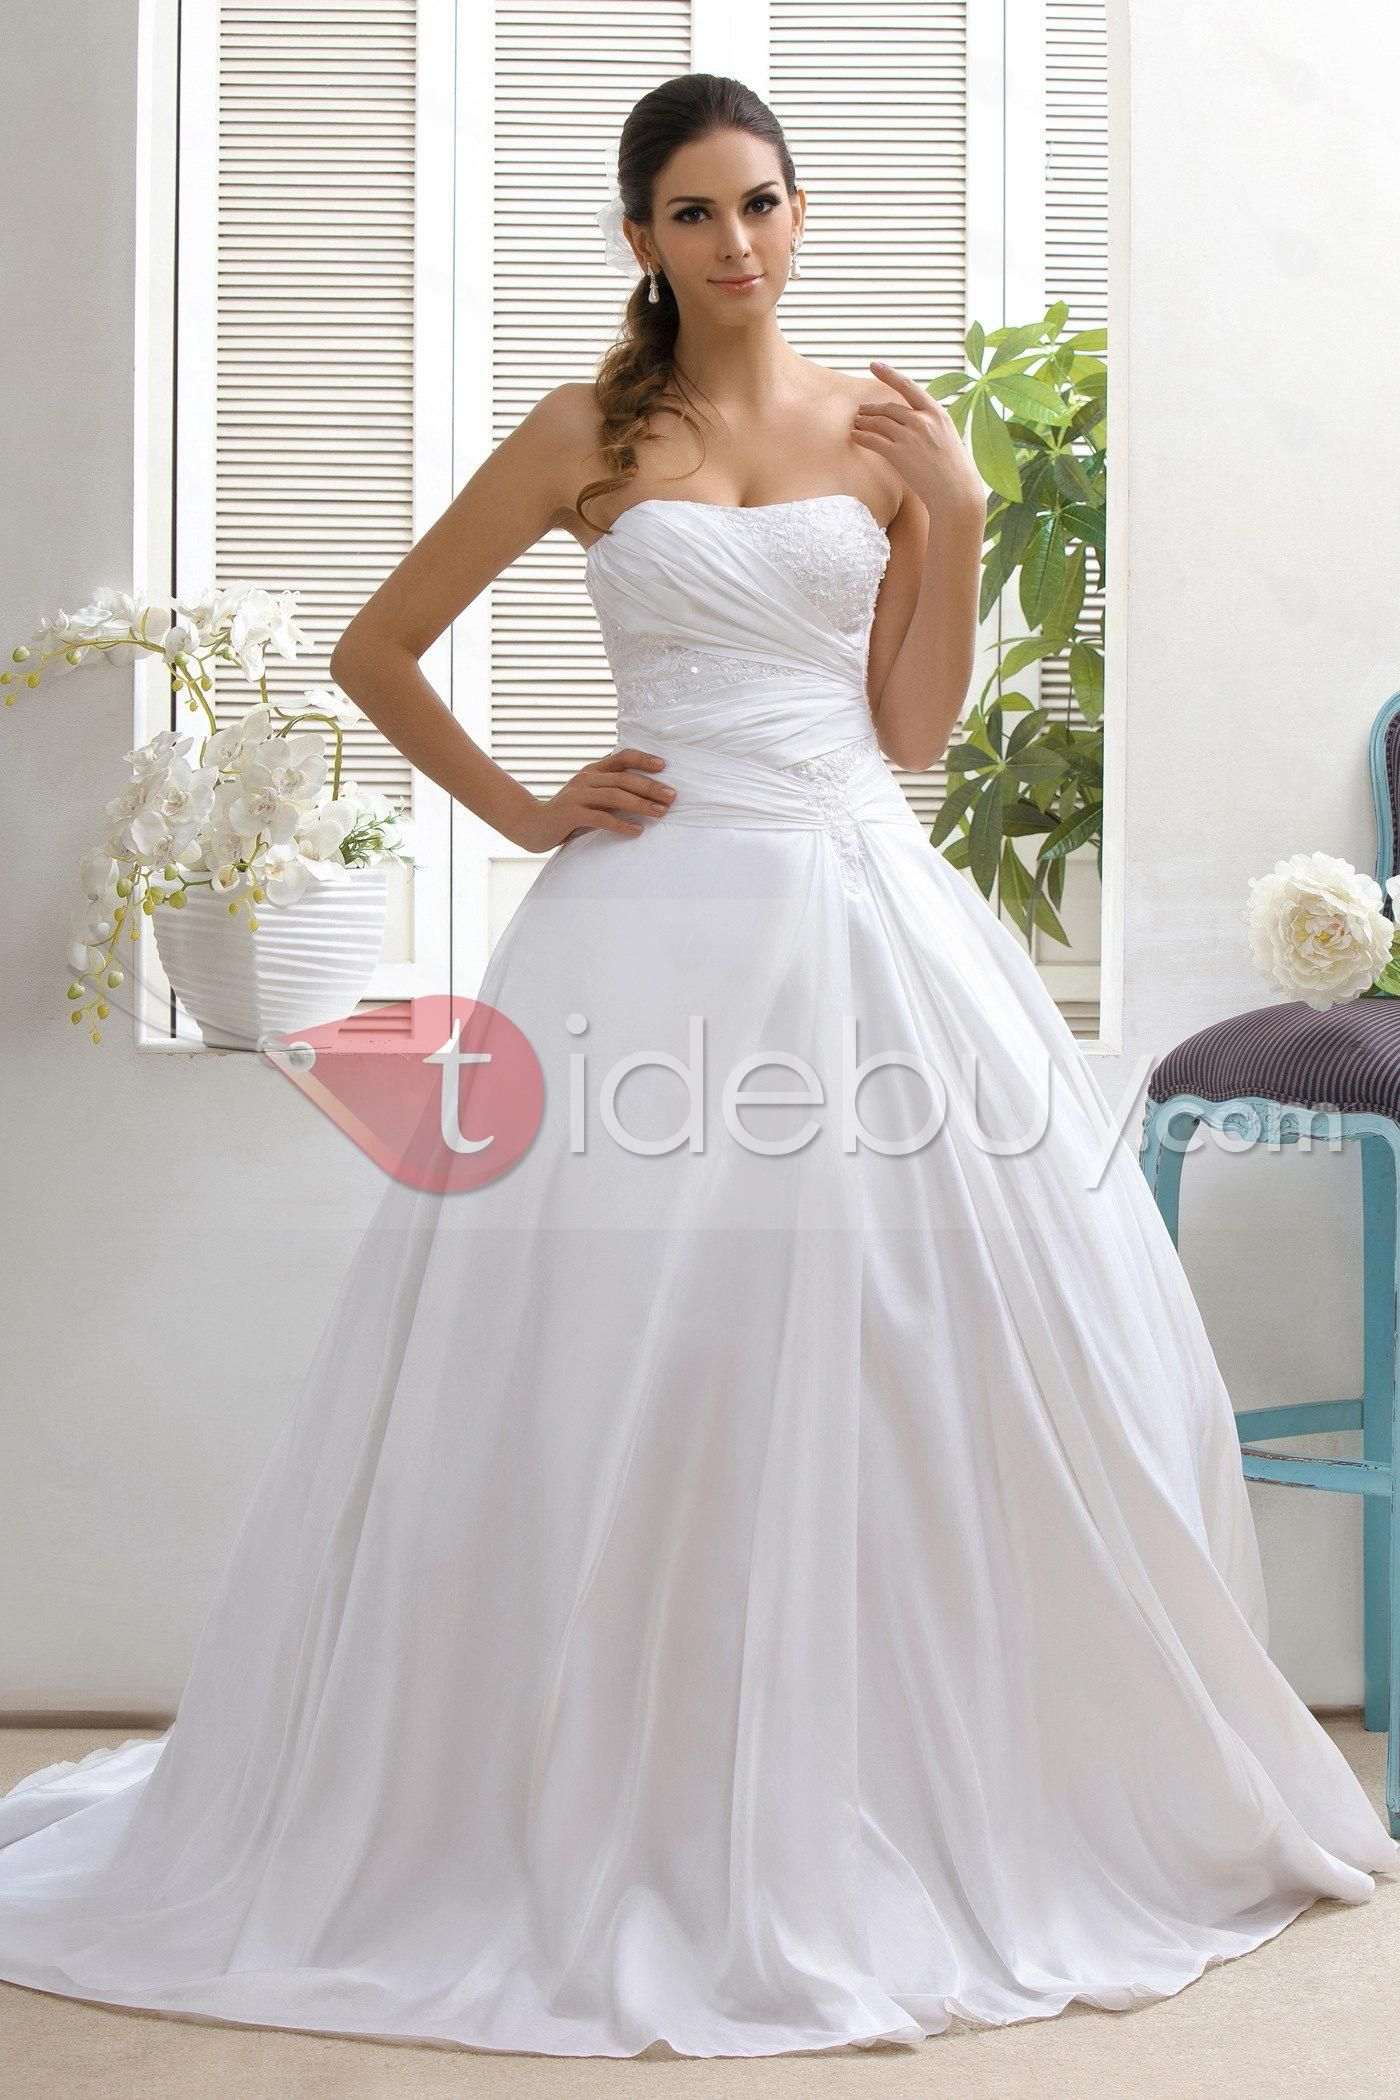 Strapless ball gown wedding dresses  Concise Strapless ALine Sweep Appliques Talineus Wedding Dress